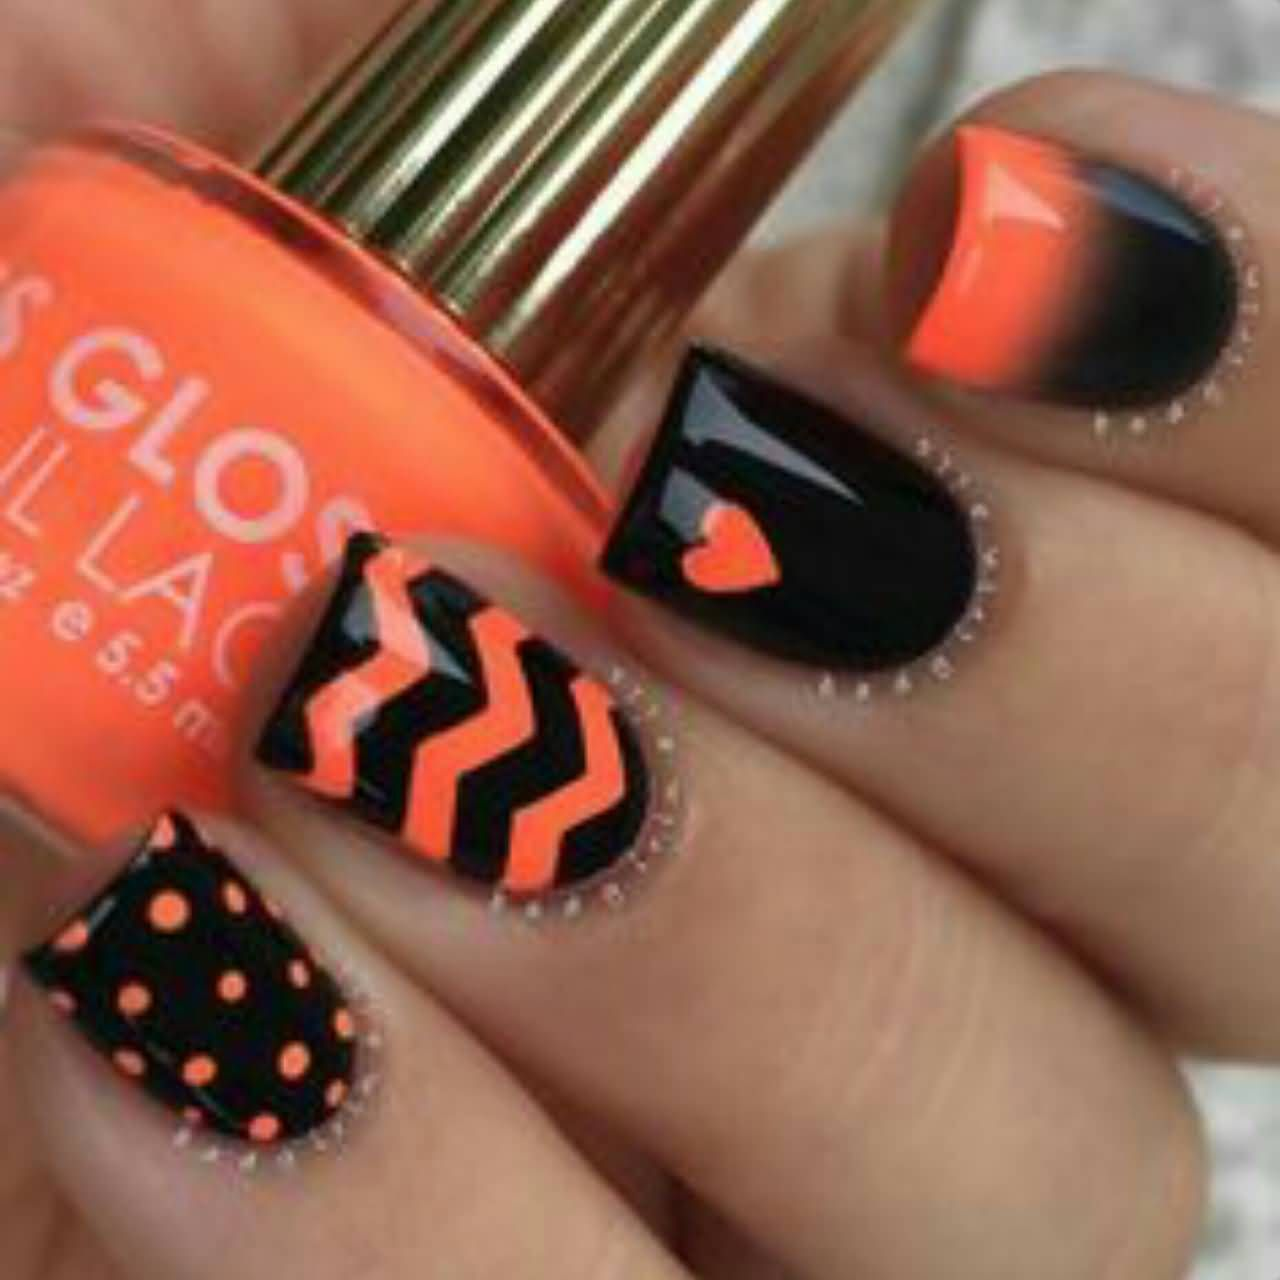 Orange And Black Chevron Dots Nail Art Design - Orange And Black Chevron Dots Nail Art Design Stylish Nails